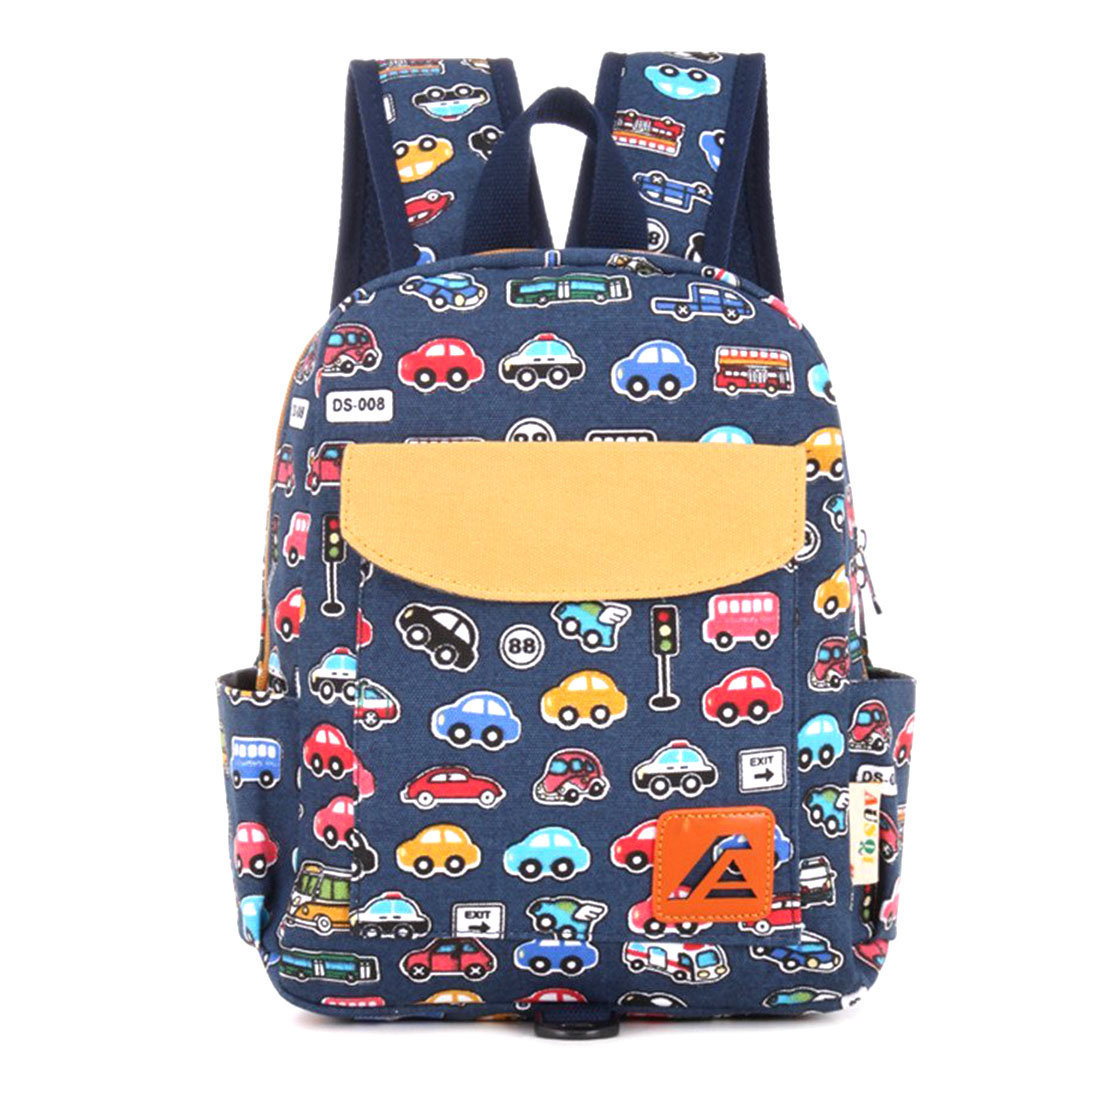 Children School Bag Printing Canvas Backpack Rucksack Kindergarten School Student Bag For Boys Girls Kids Toddlers Blue Bus M japan anime fairy tail happy natsu cosplay backpack student printing canvas shoulder bag boys girls teenagers school bag